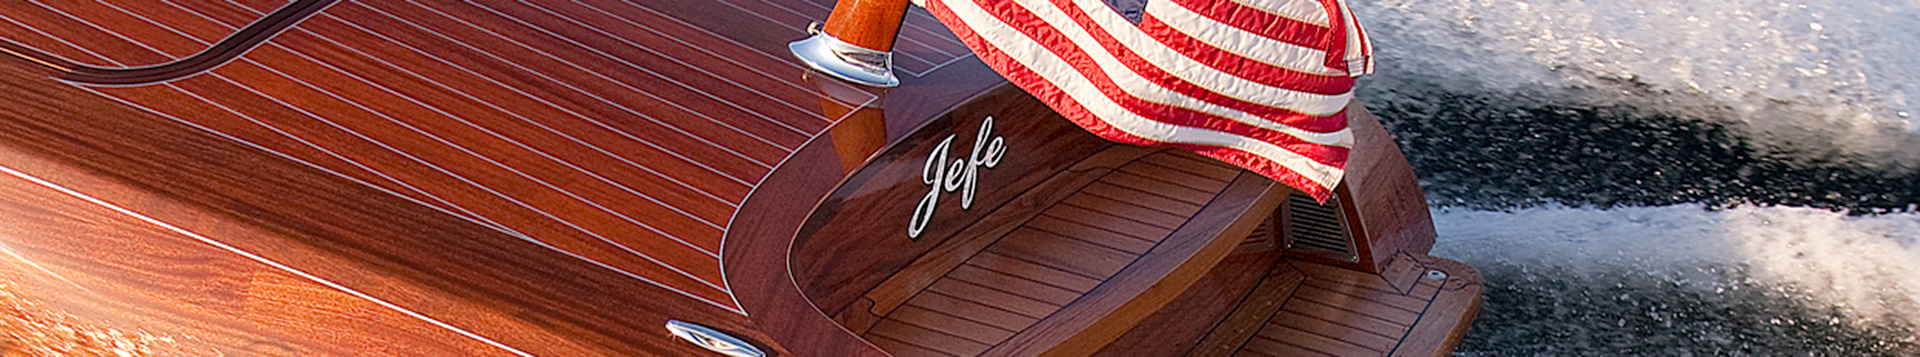 Yachts France: Jefe